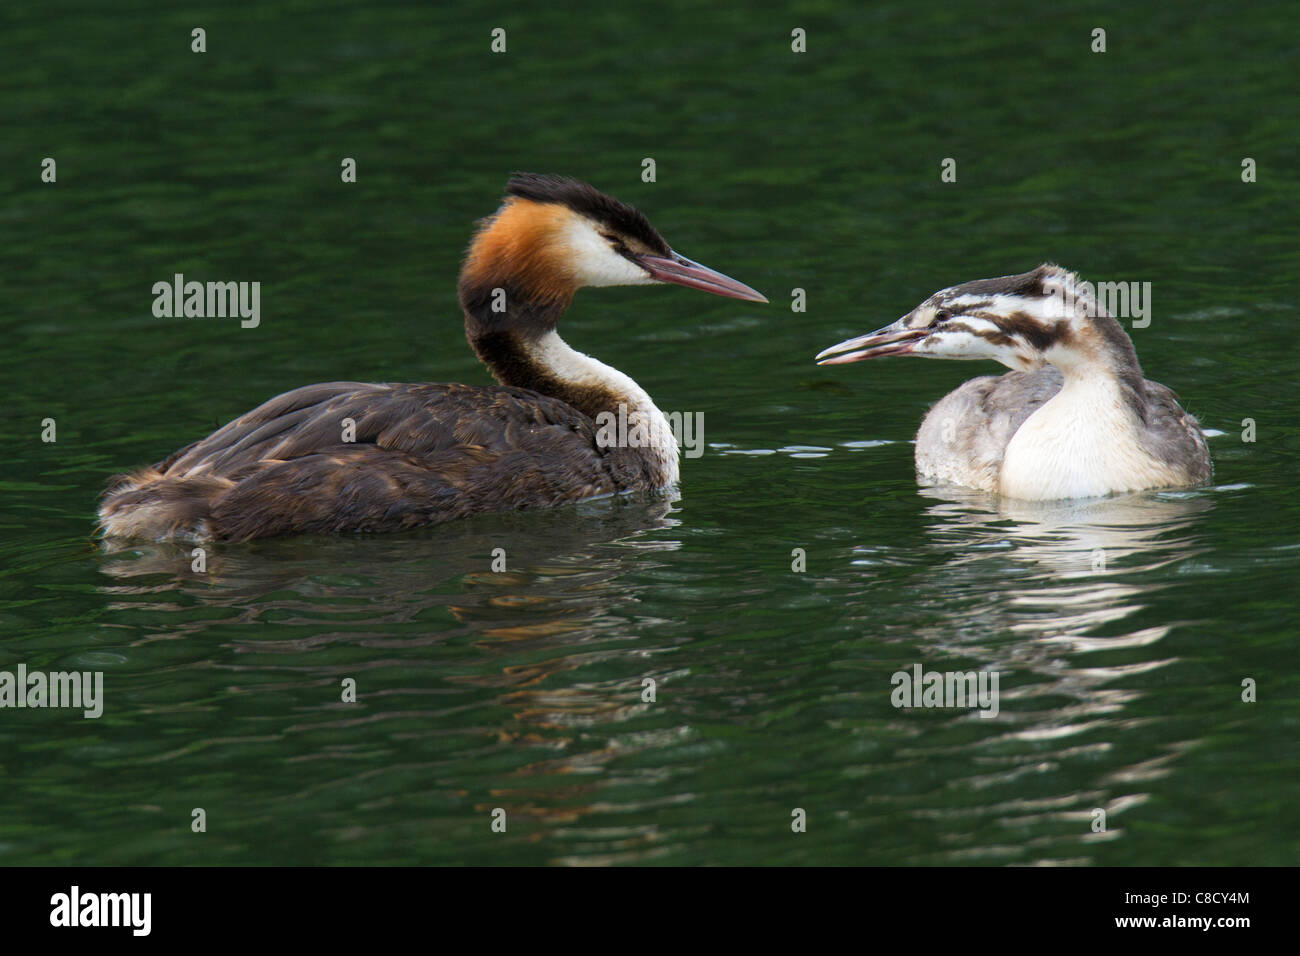 adult and juvenile Great Crested Grebes (Podiceps cristatus) - Stock Image